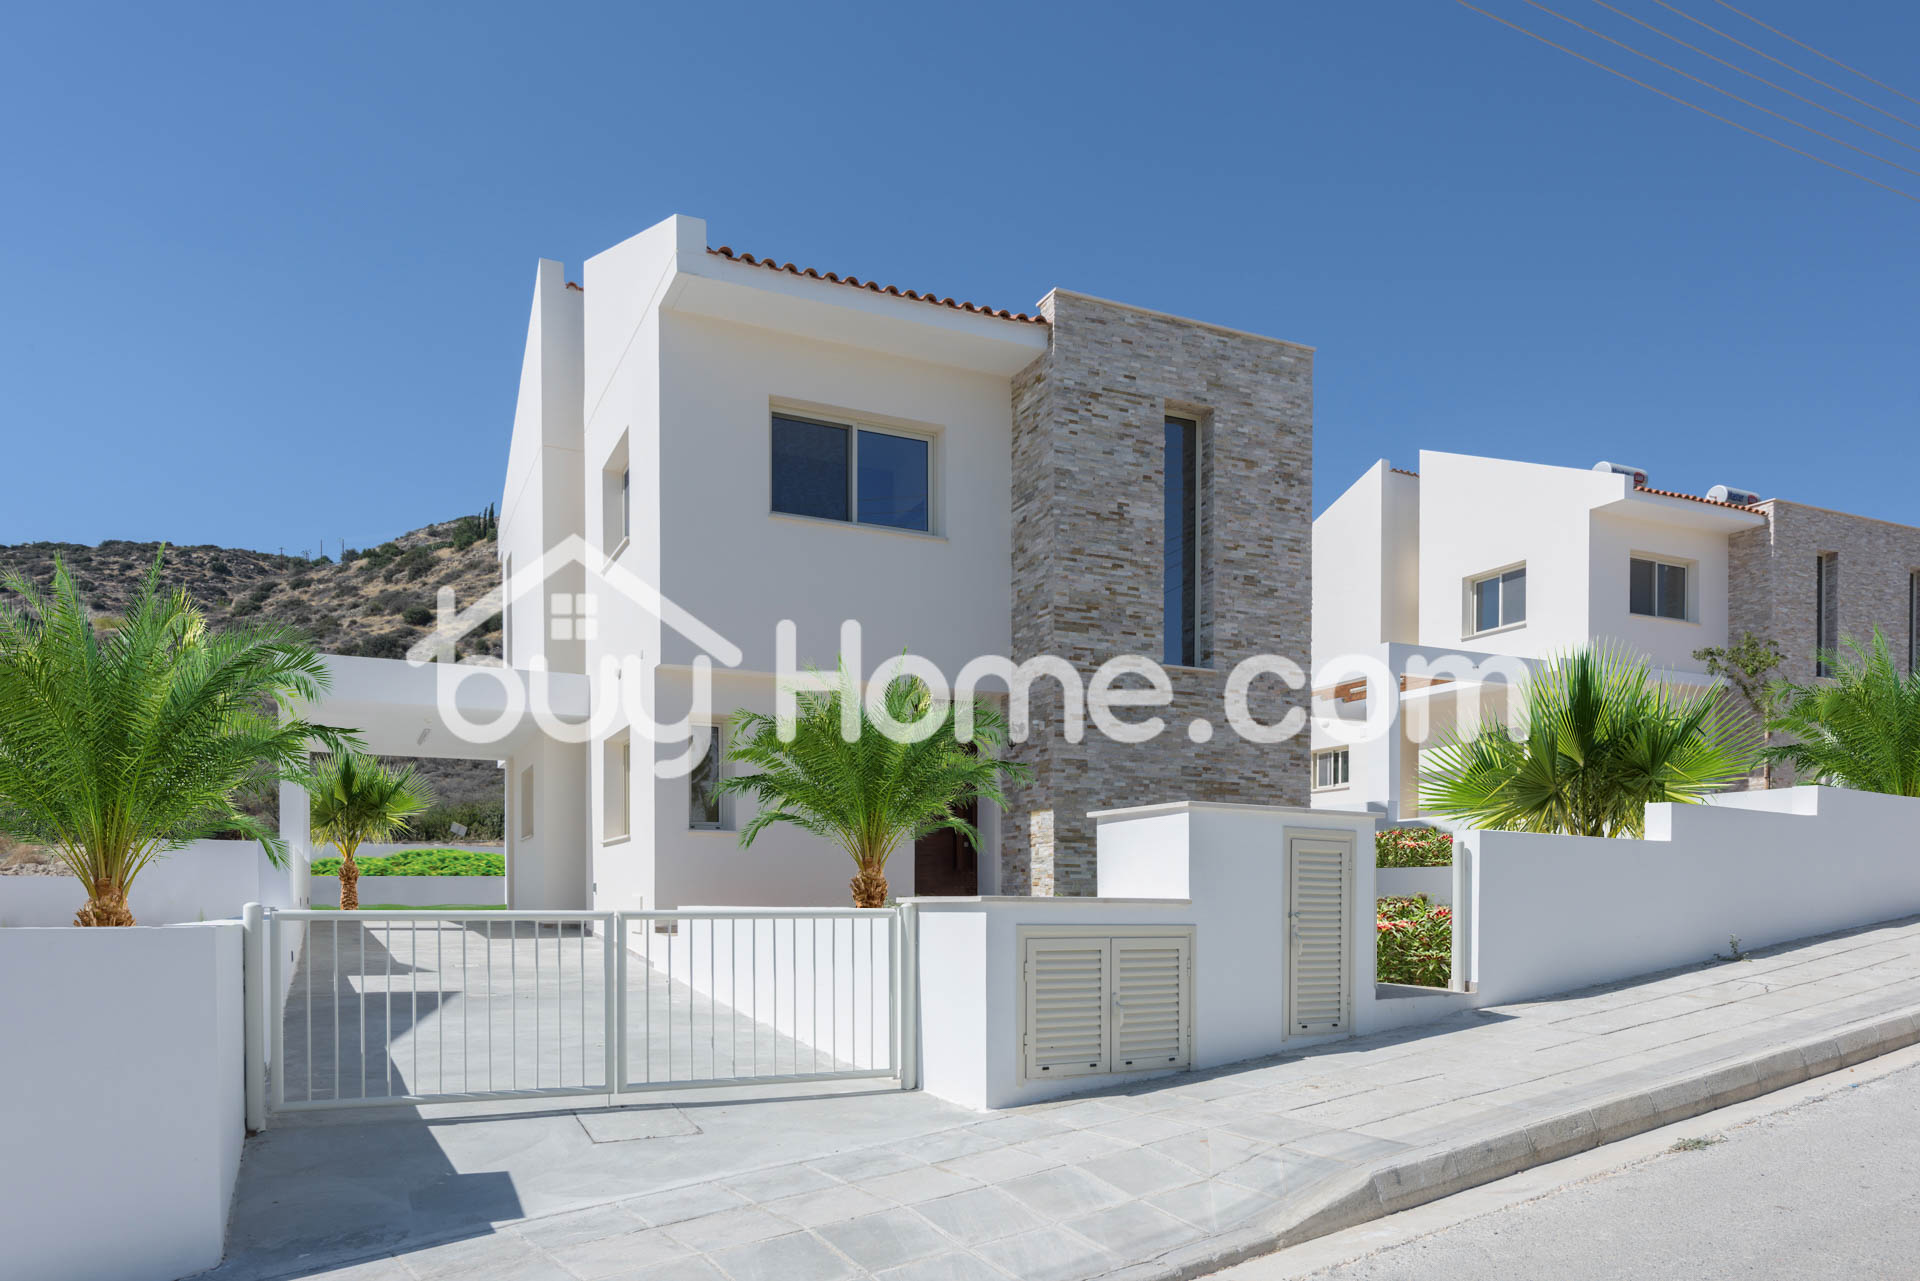 New 3 BDR Villa in Palodia | BuyHome